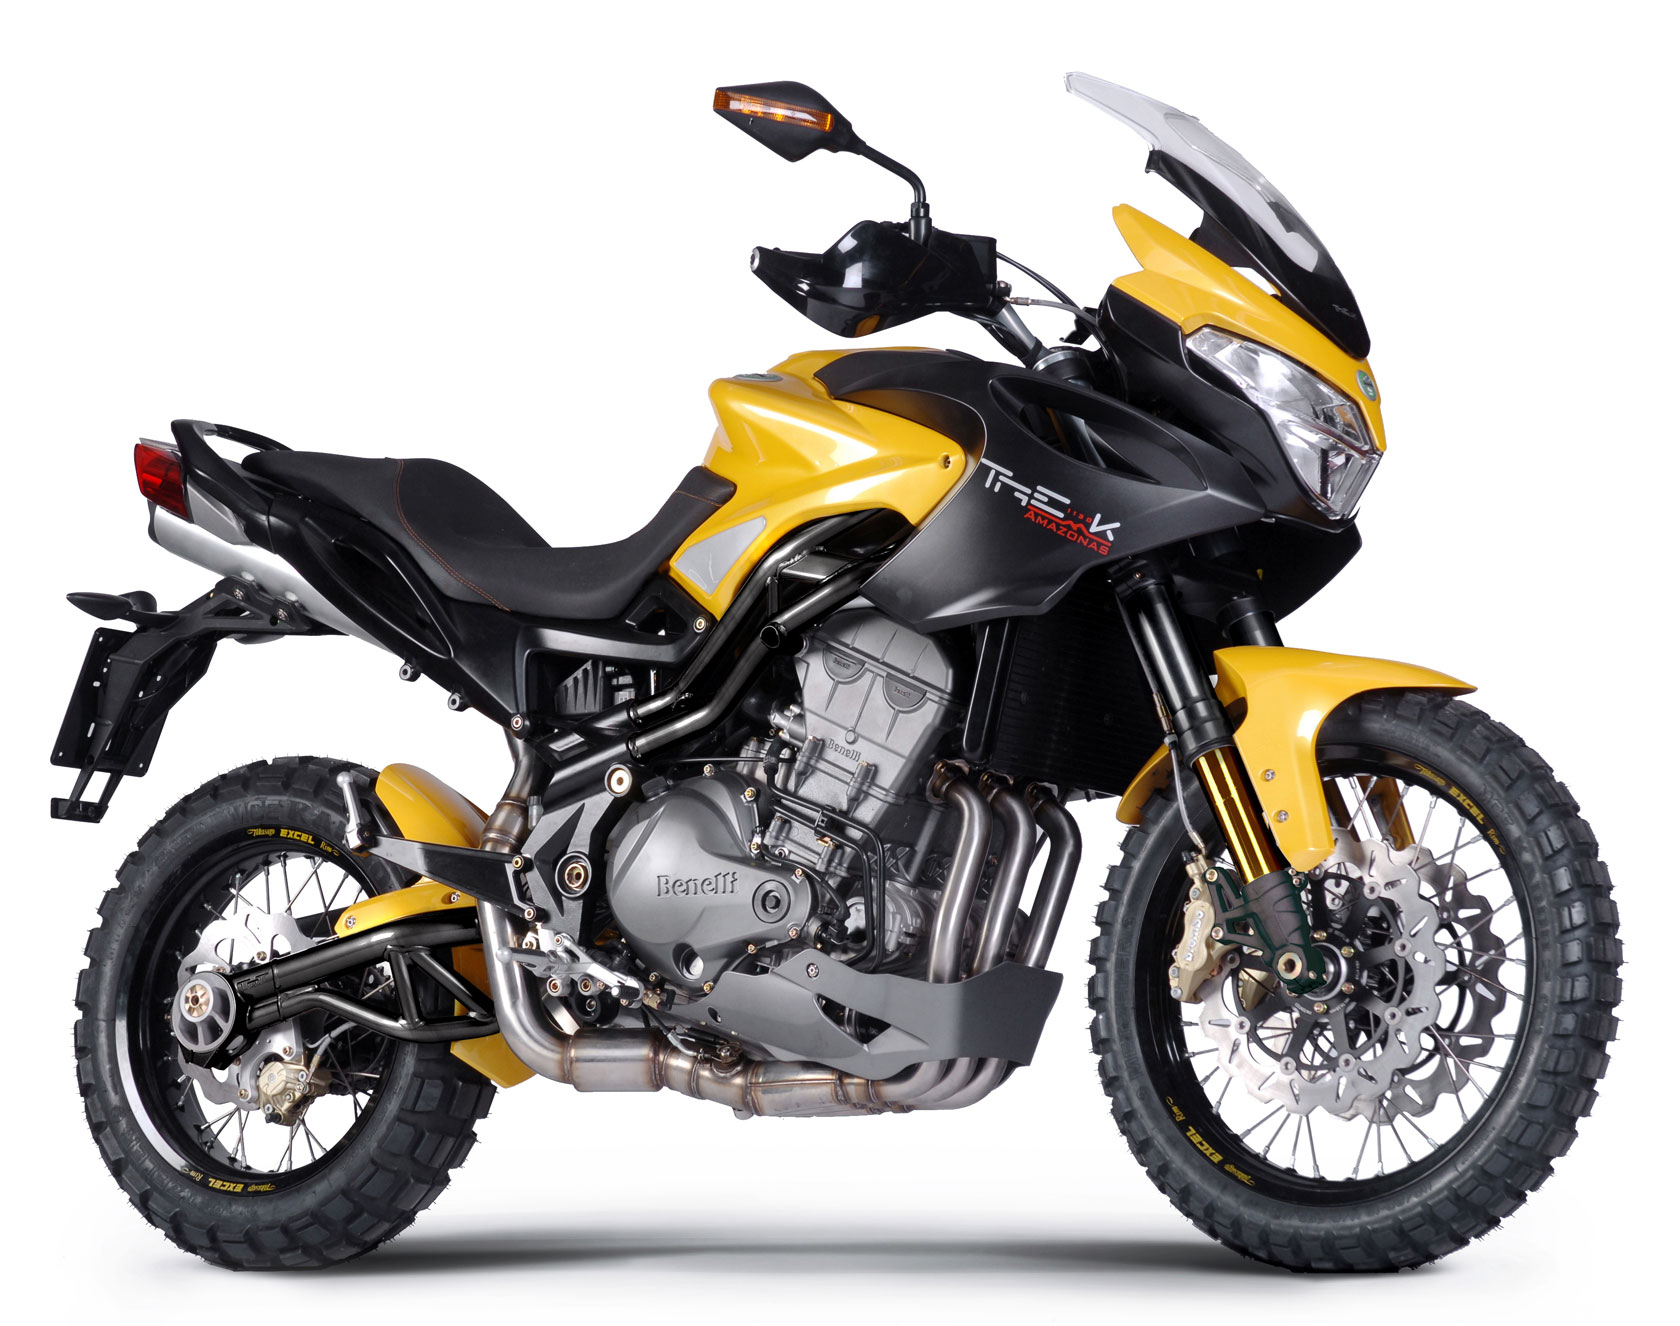 2011 Benelli Motorcycl...